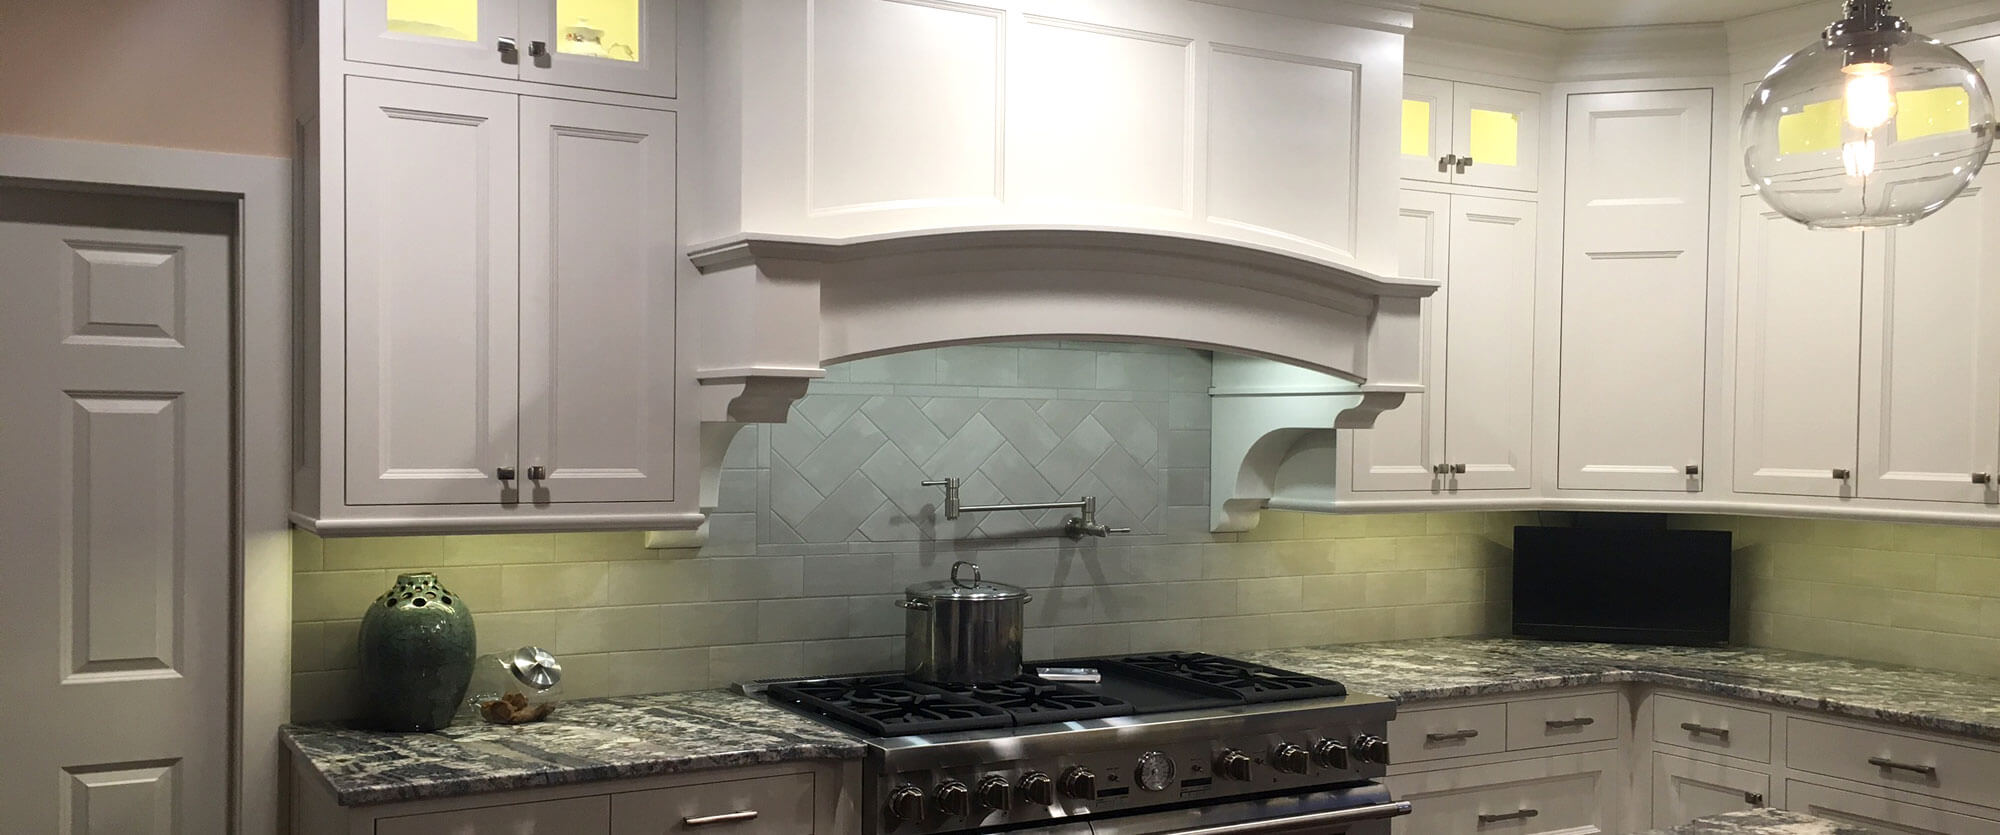 Custom kitchen cabinets made of solid wood and painted white featuring a curved range hood and lighted upper doors; designed, built, and installed by finewood Structures of Browerville, MN